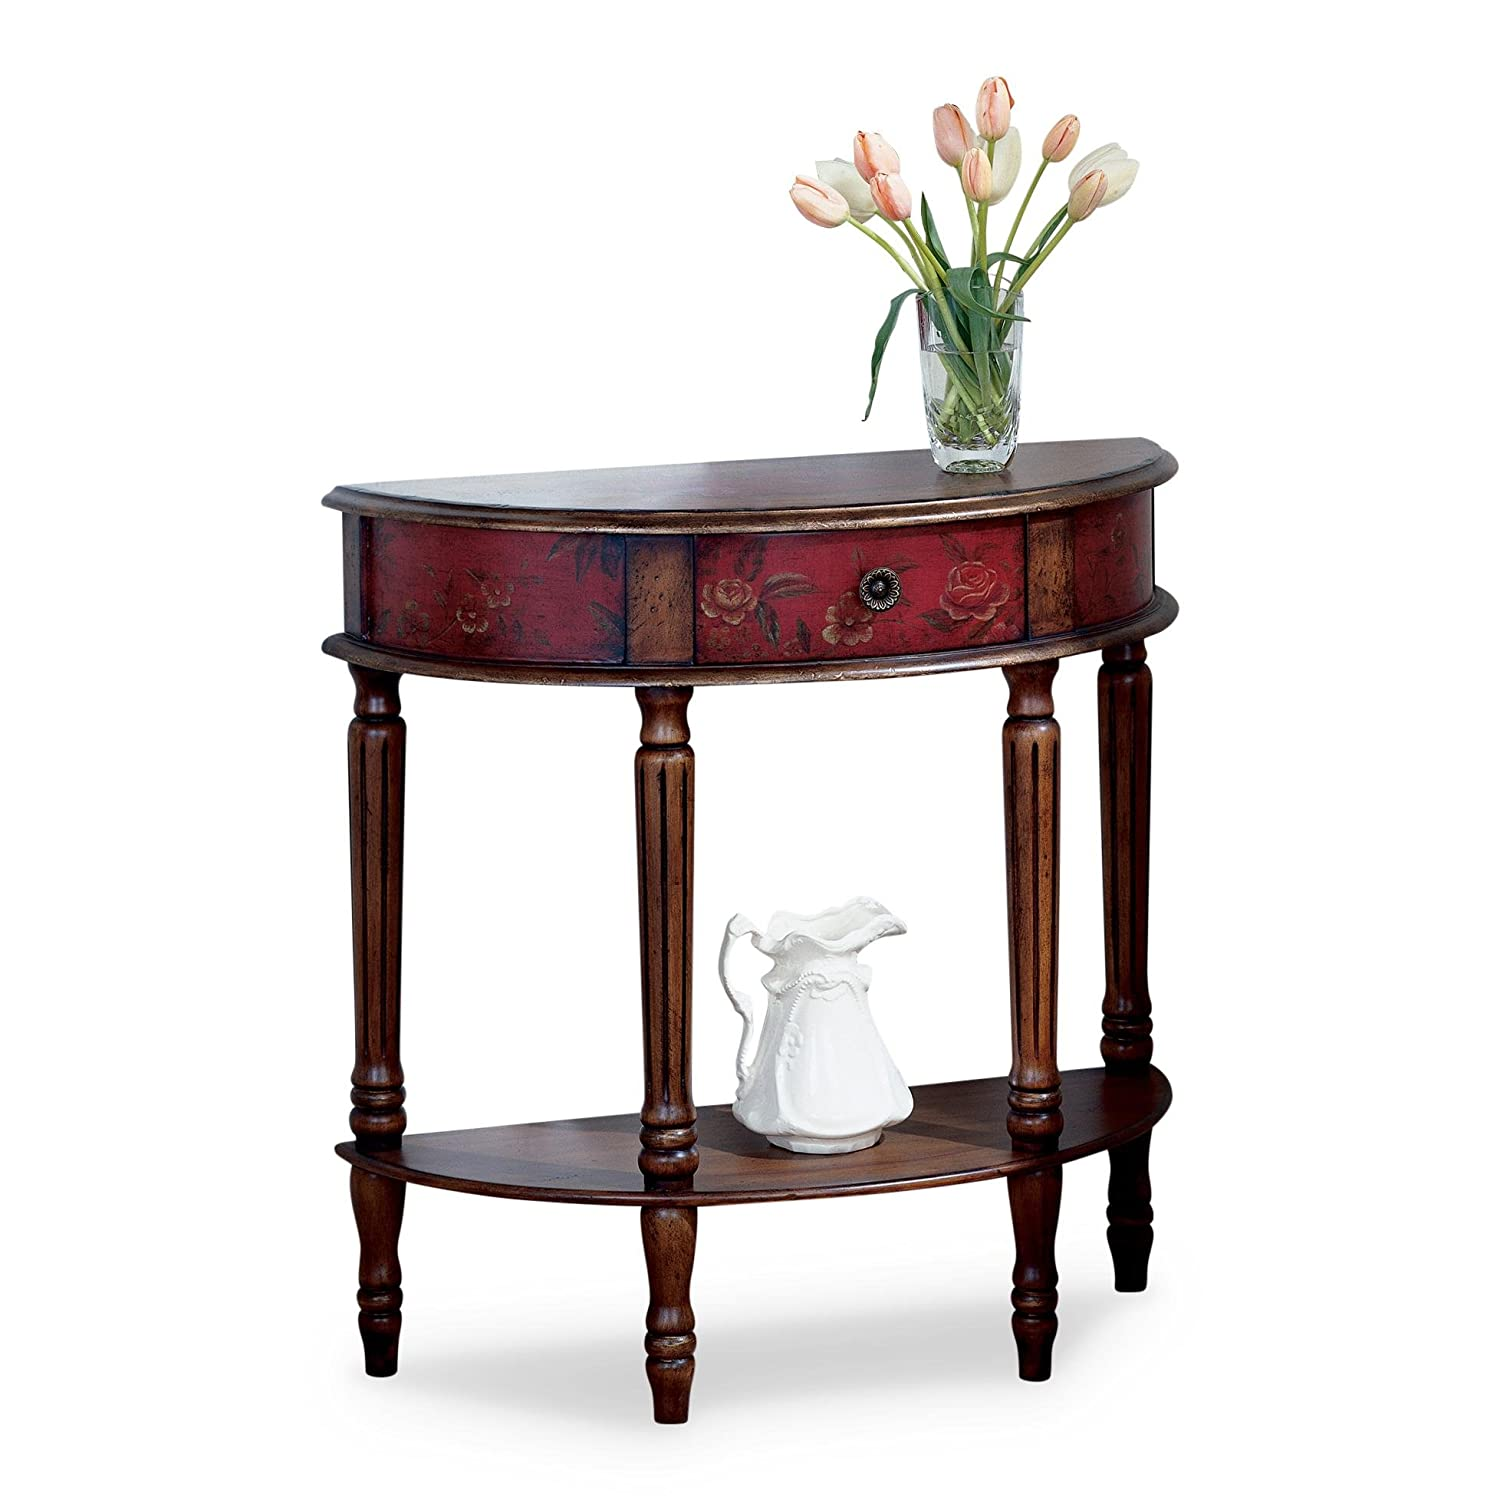 Sensational Amazon Com Butler Mozart Red Hand Painted Demilune Console Home Interior And Landscaping Dextoversignezvosmurscom